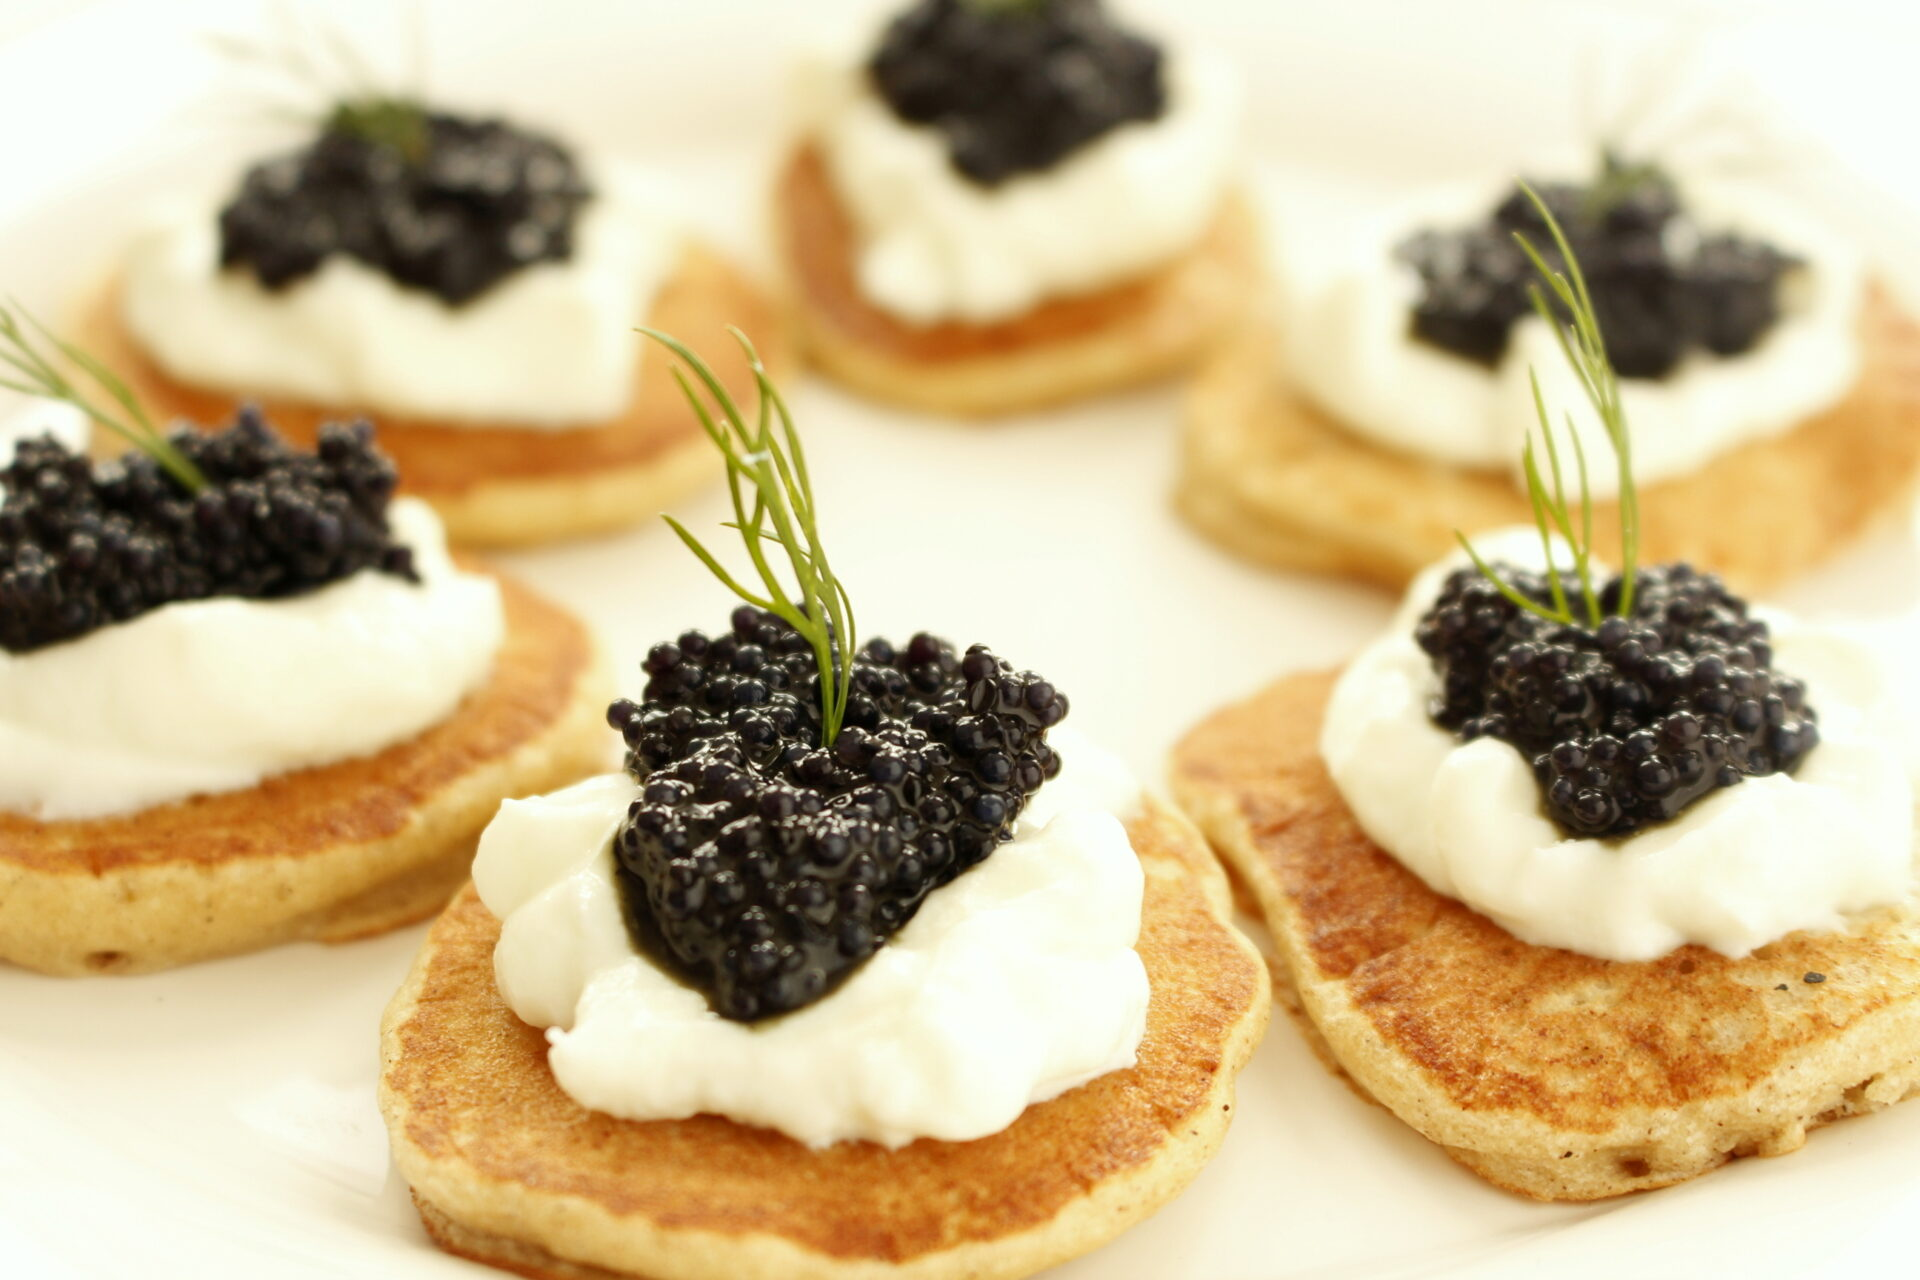 Blini con Caviale (Blini with Caviar) - Passion and cooking